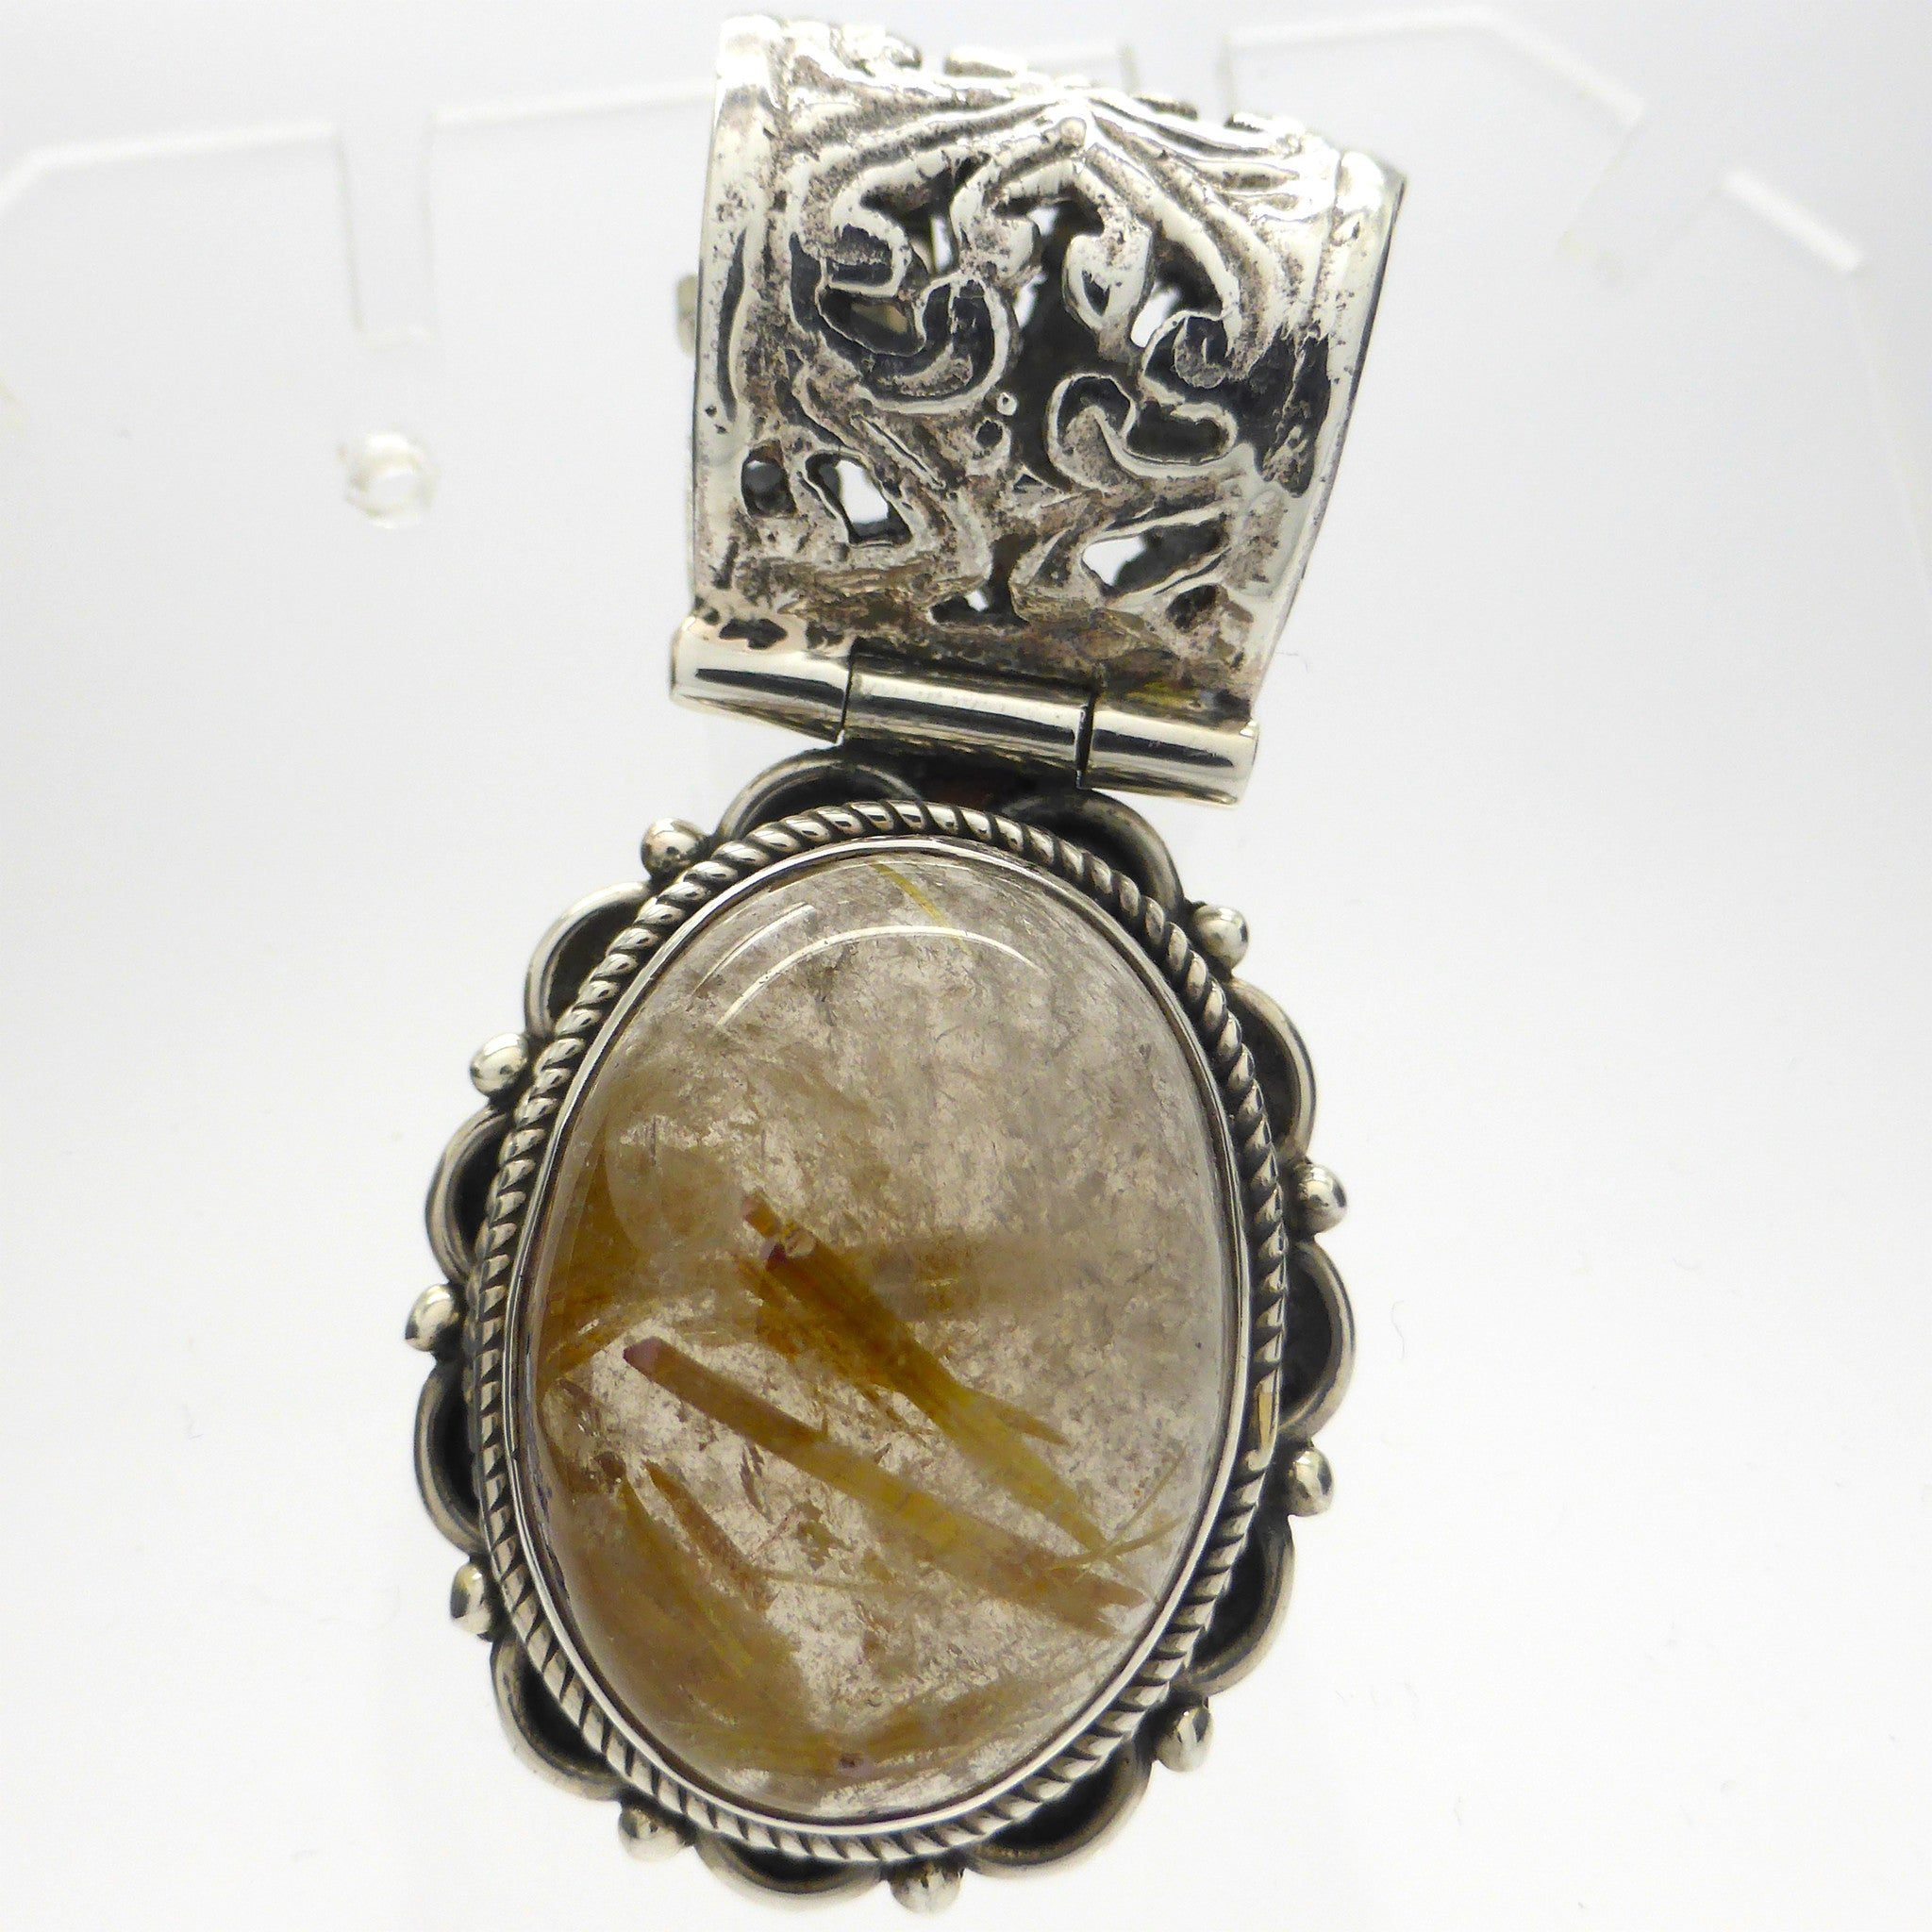 Genuine Rutilated Quartz Pendant | 925 Sterling Silver | Golden Rutile in Clear Quartz | Crown Chakra | New Directions | Prosperity | Crystal Heart  Australia since 1986